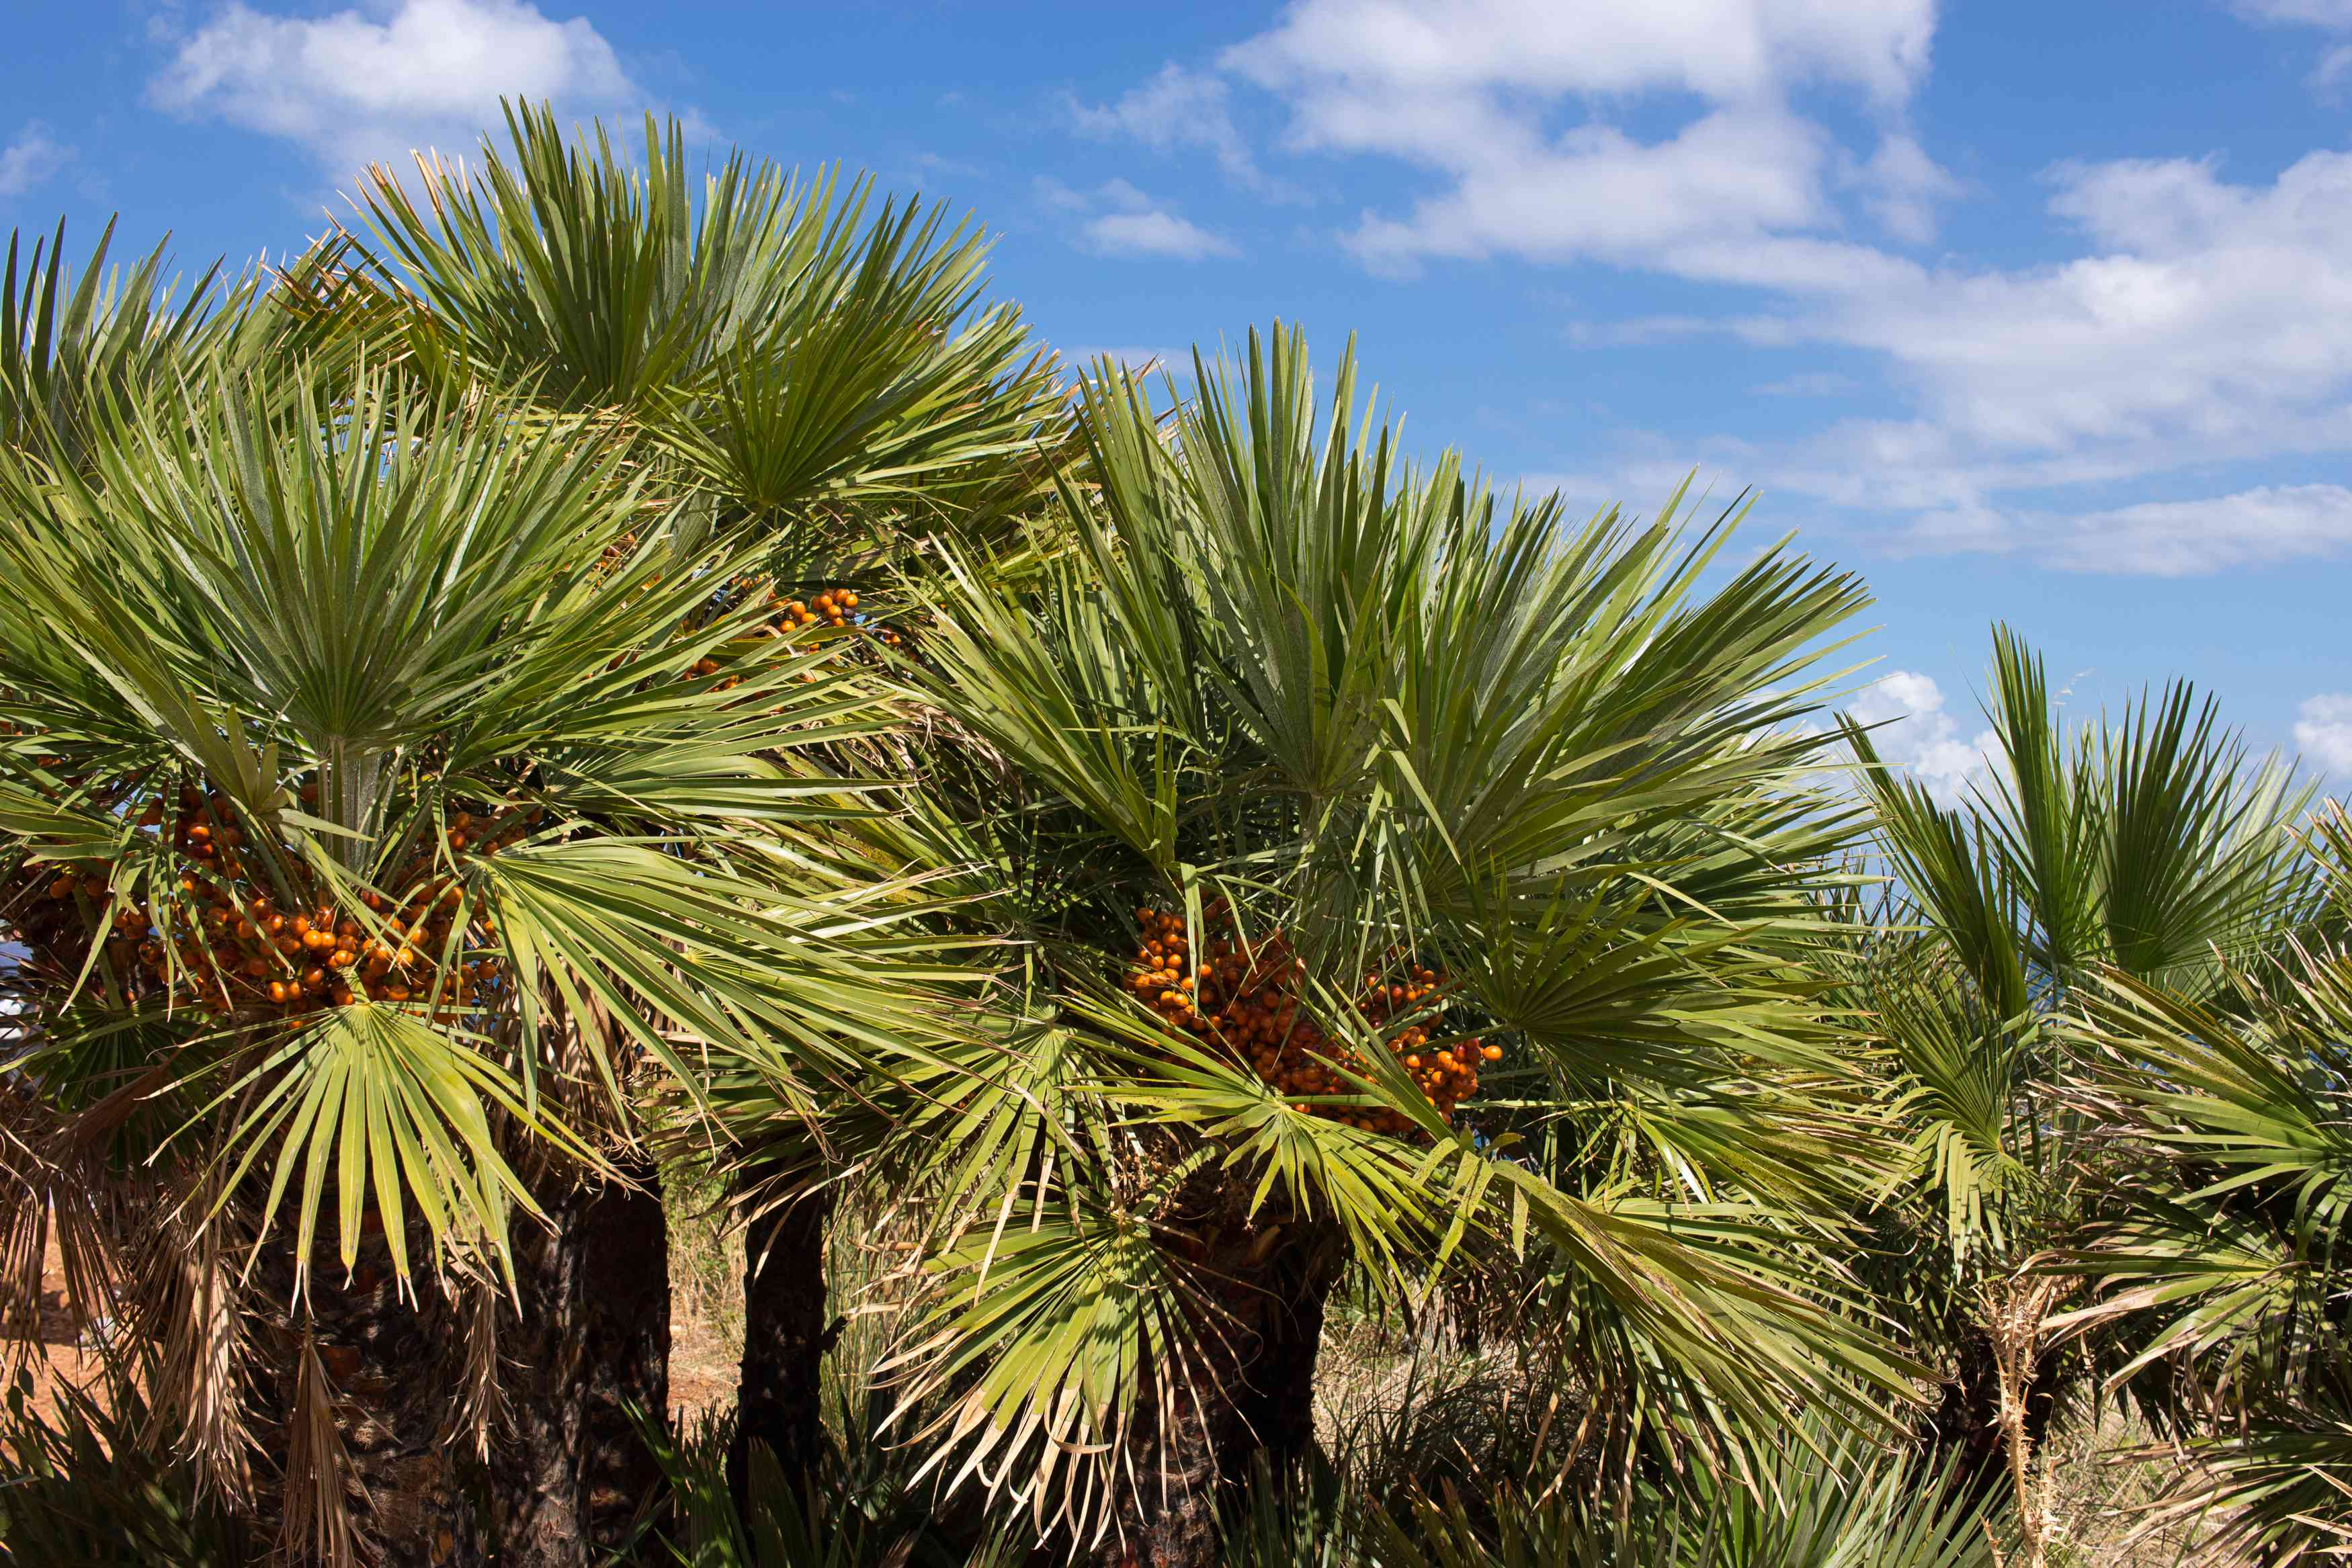 Group of European fan palm trees with green fronds